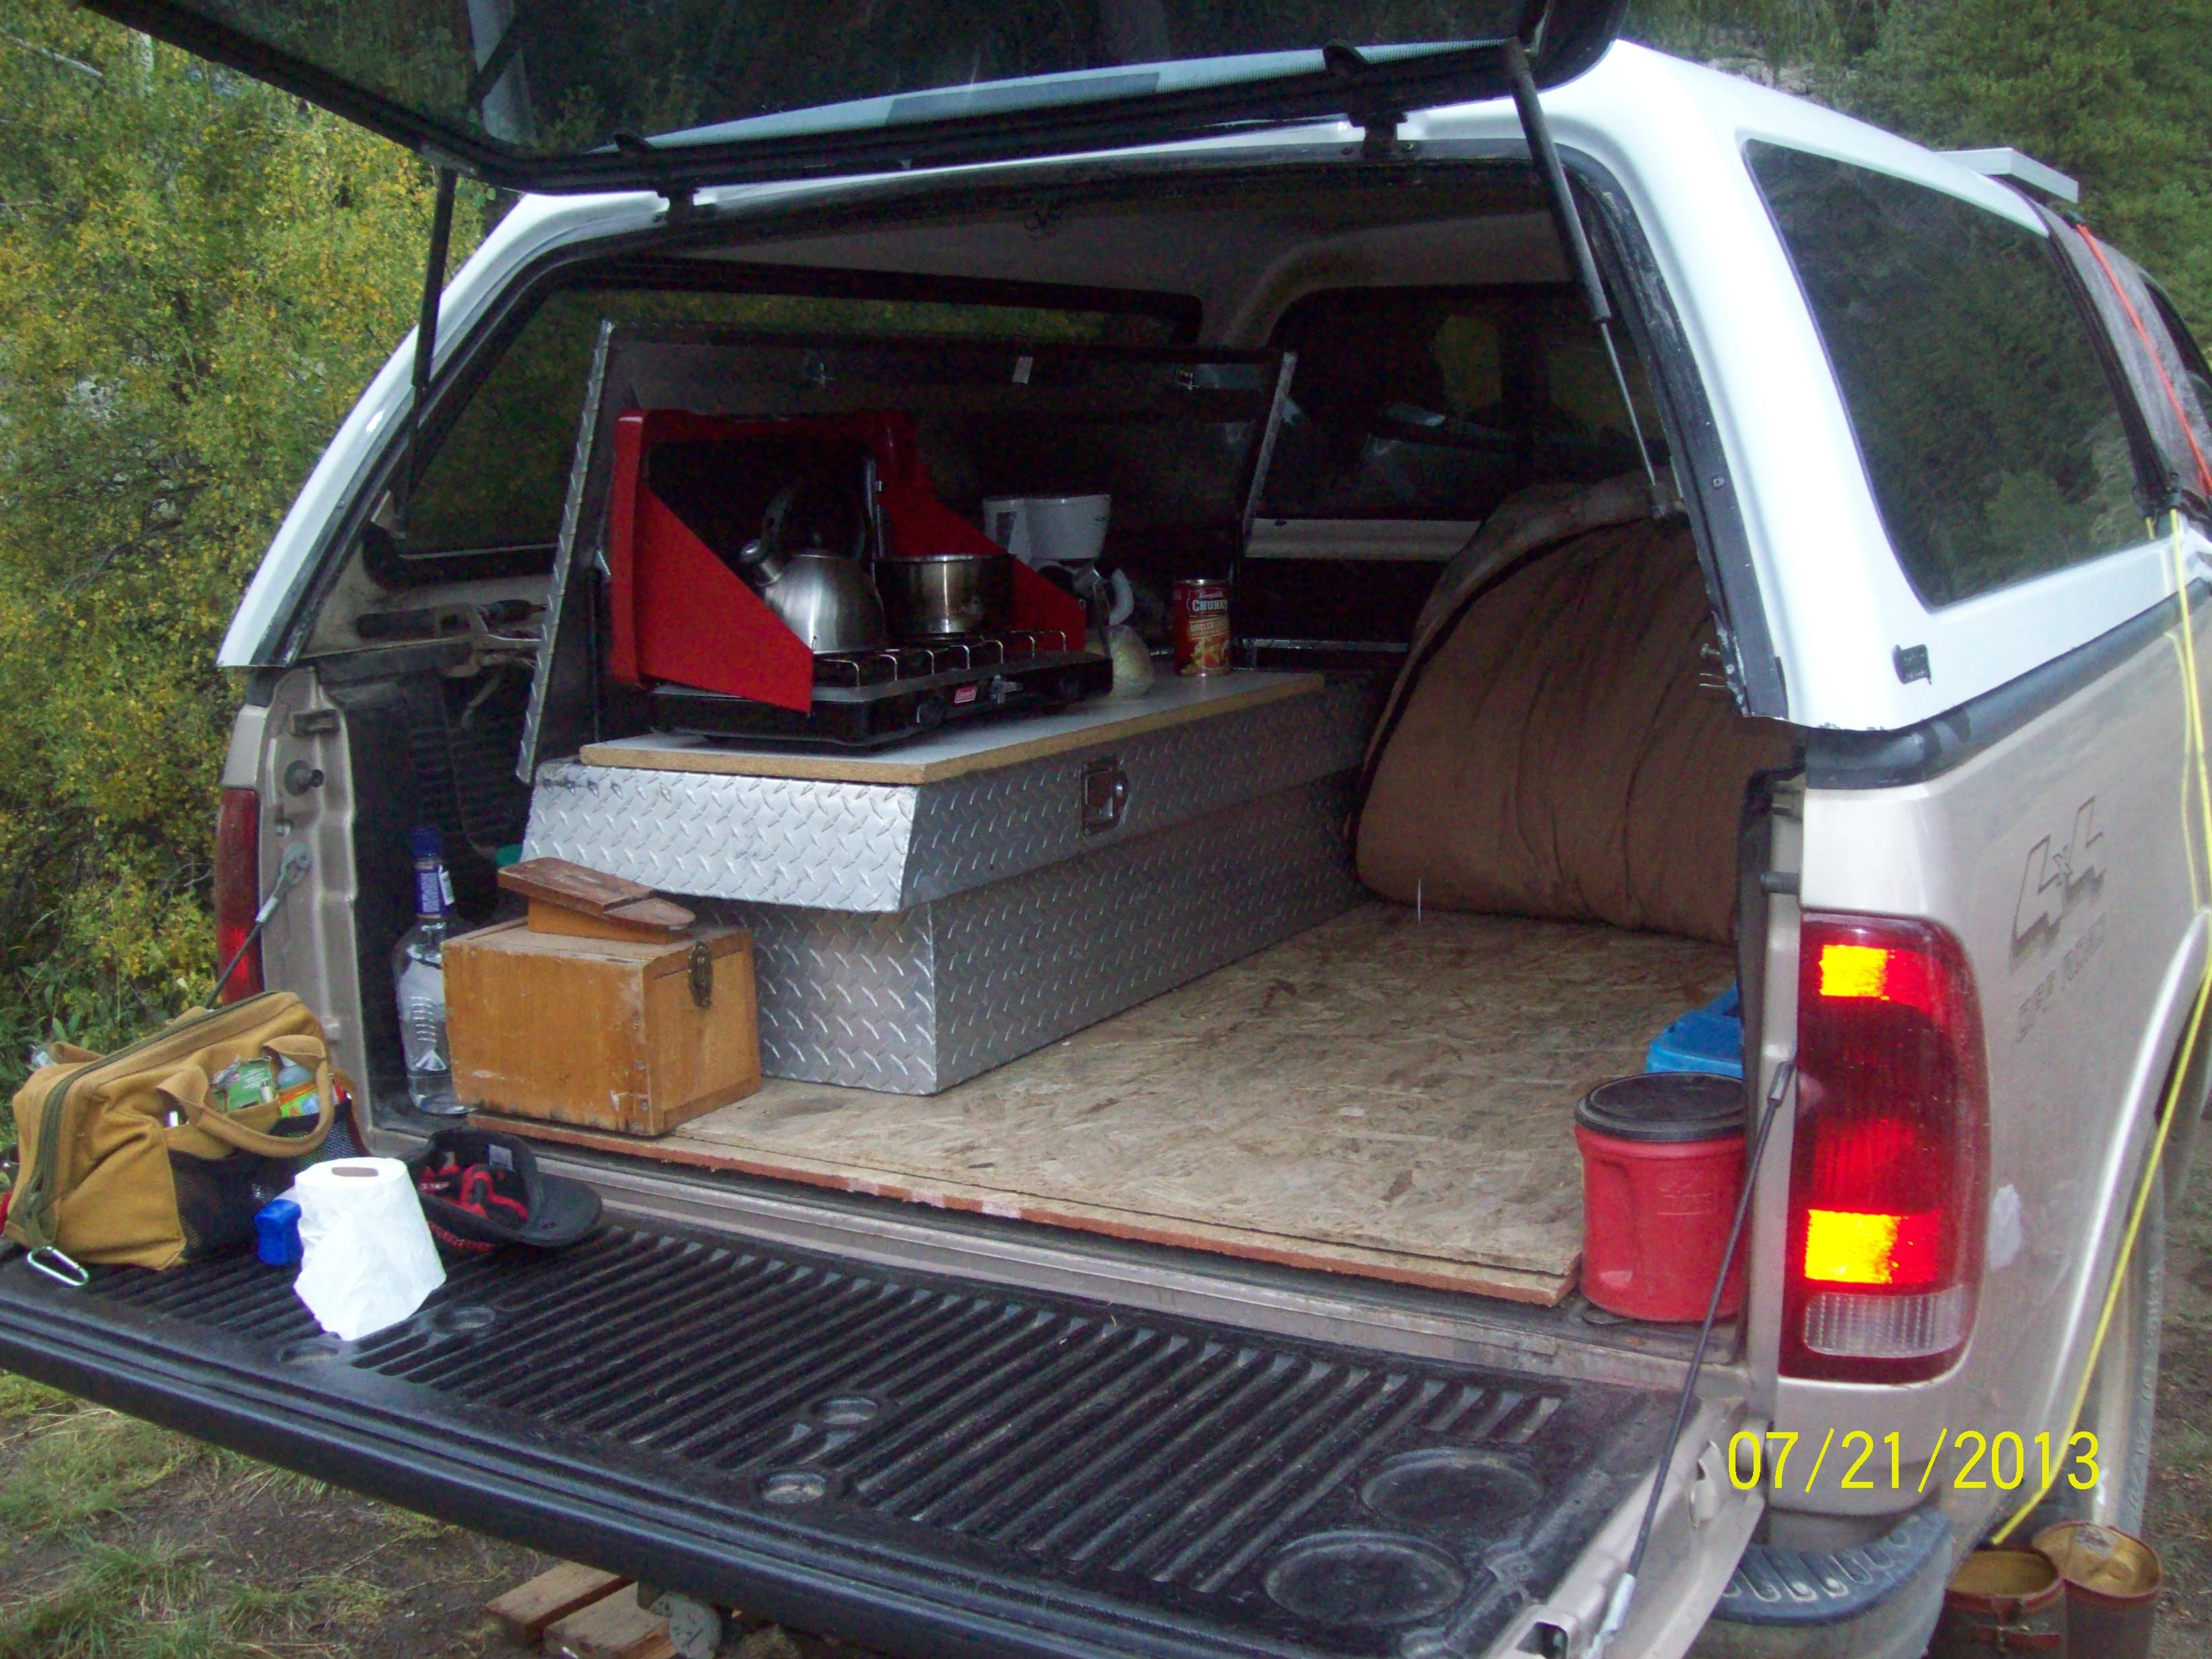 Camp Kitchens In A Box Survival Gear campers Pinterest